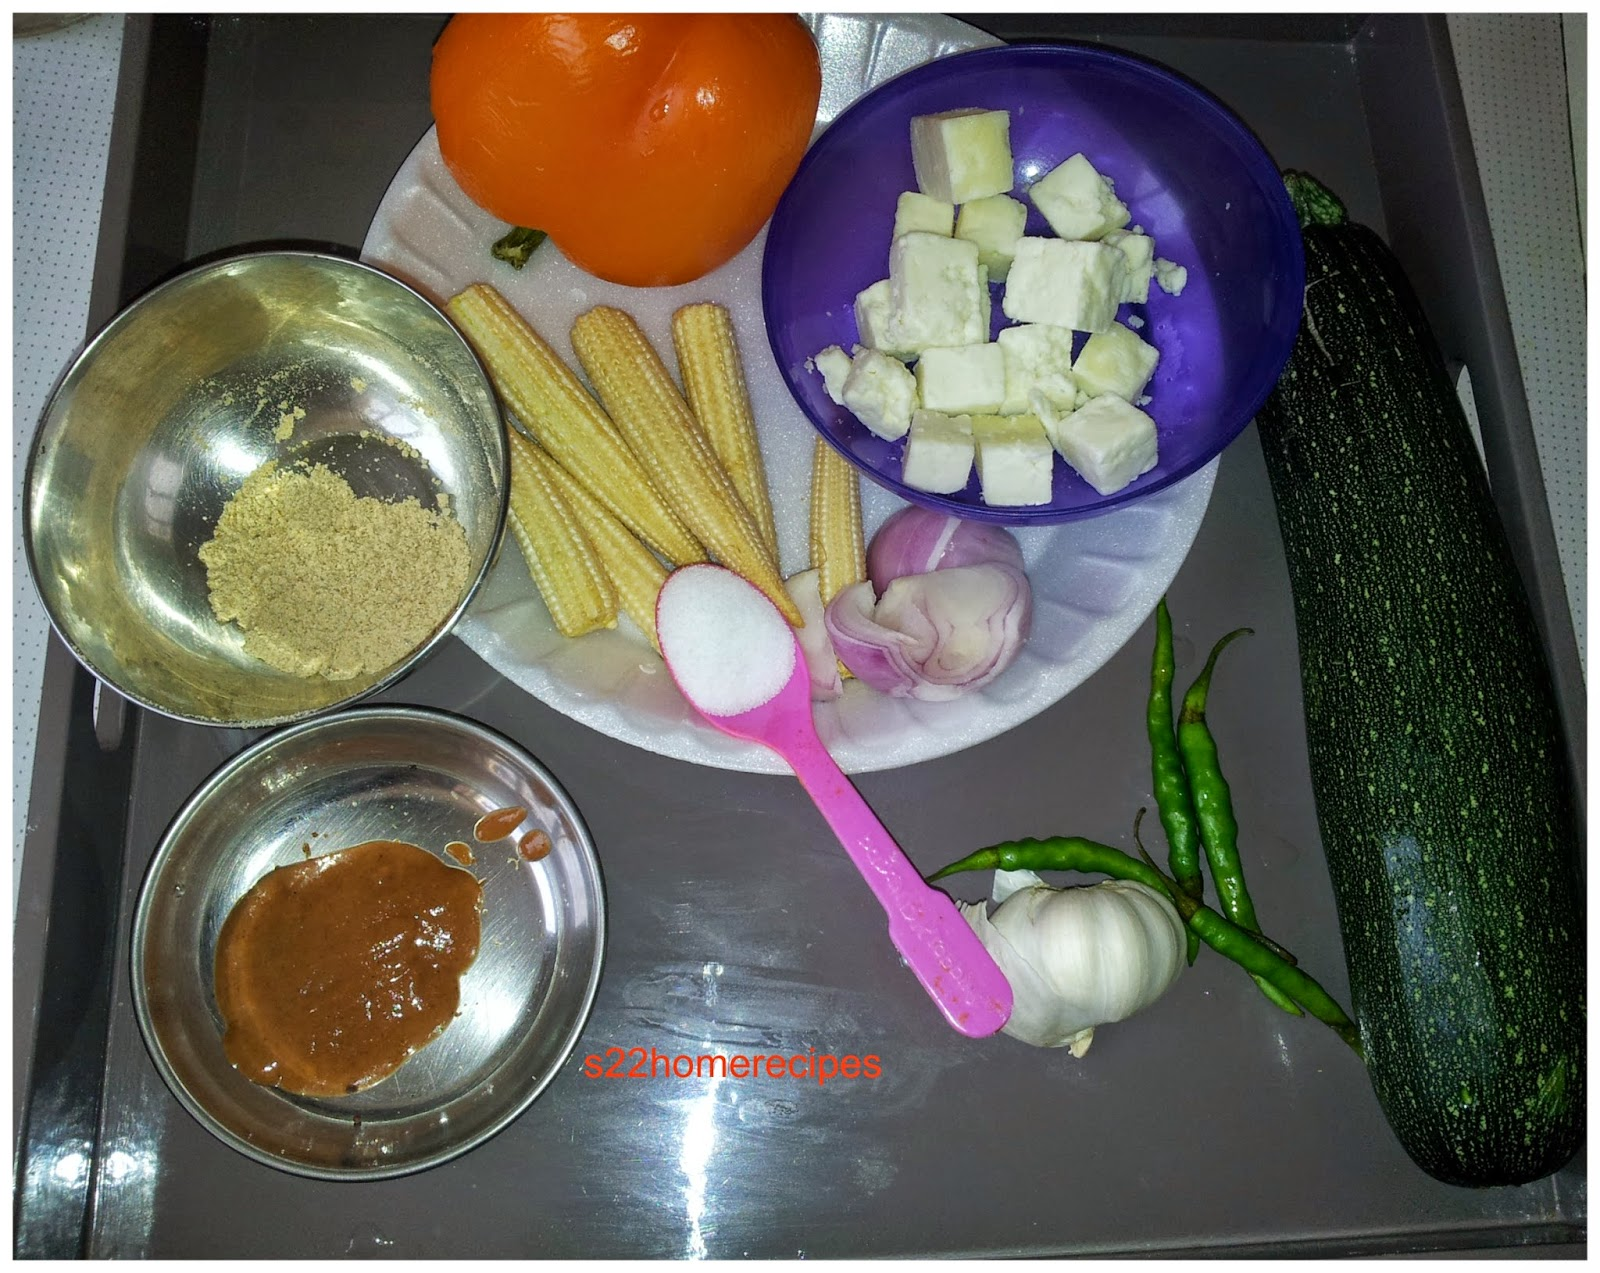 Baby corn-Paneer-Zucchini stir fry with bell peppers